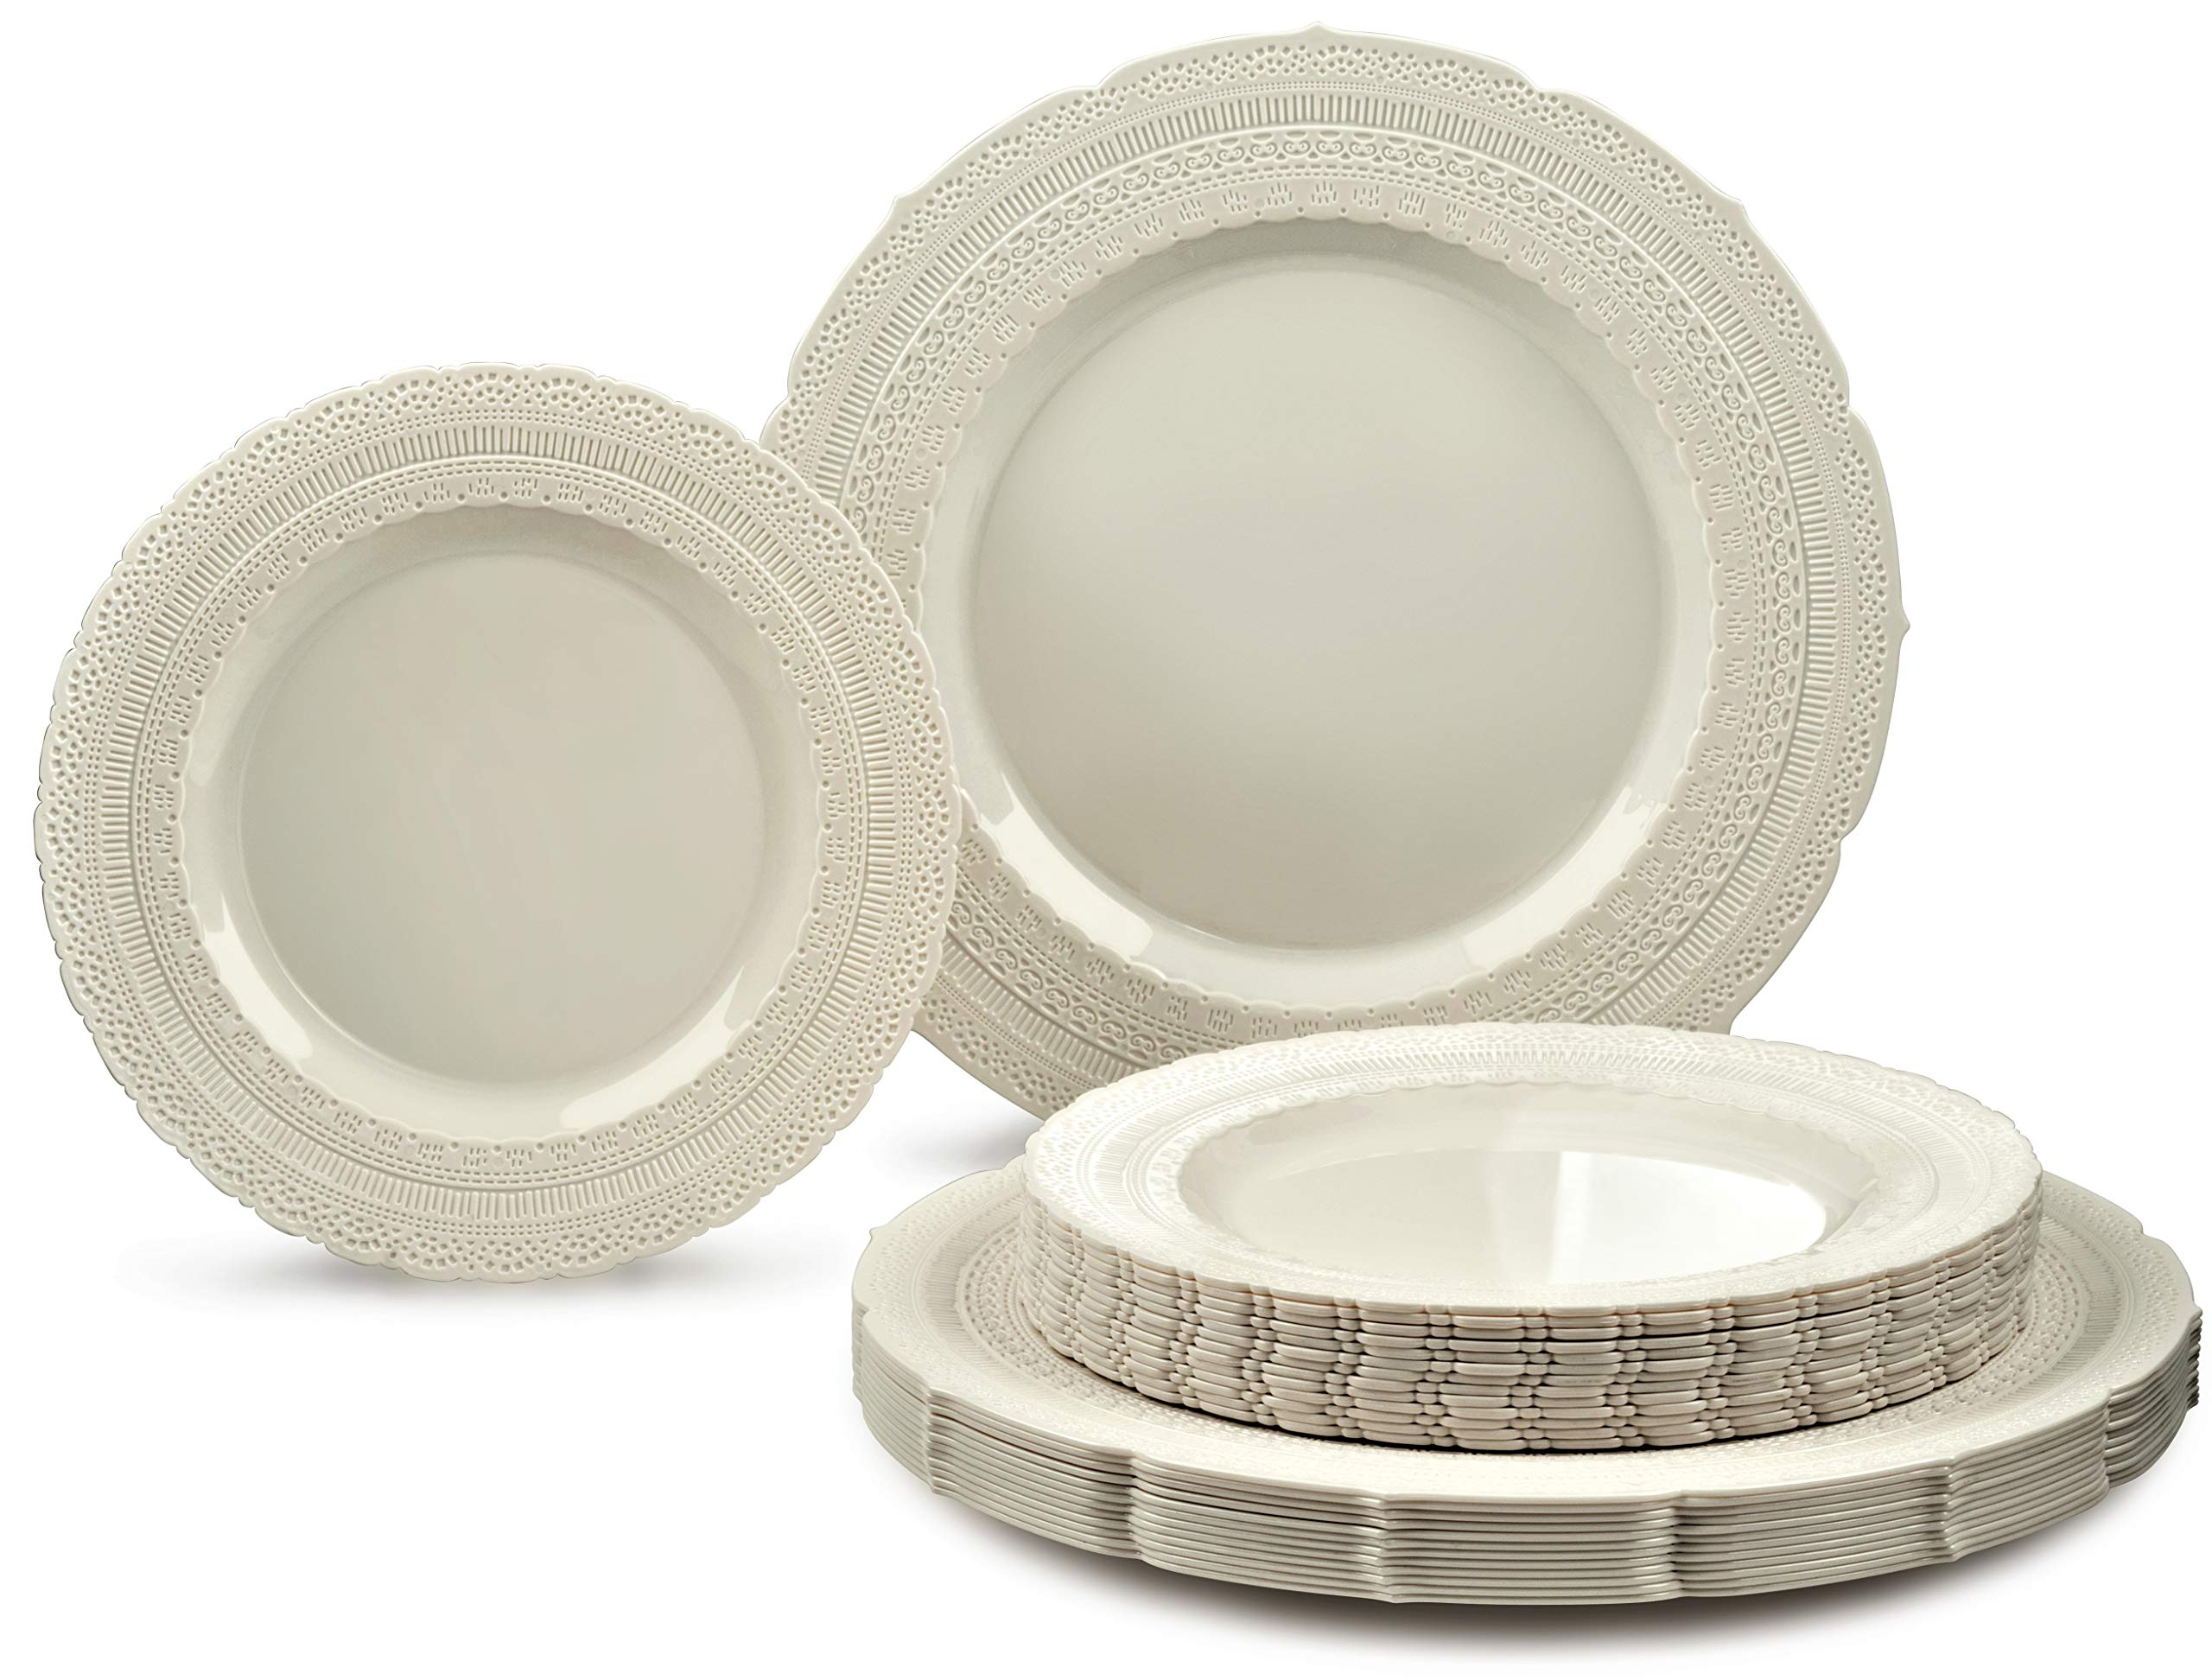 '' OCCASIONS'' 240 PACK Extra Heavyweight Vintage Wedding Party Disposable Plastic Plates Set - 120. x 11'' Dinner + 120 x 8.25'' Salad/Dessert Plate (Chateau Ivory)